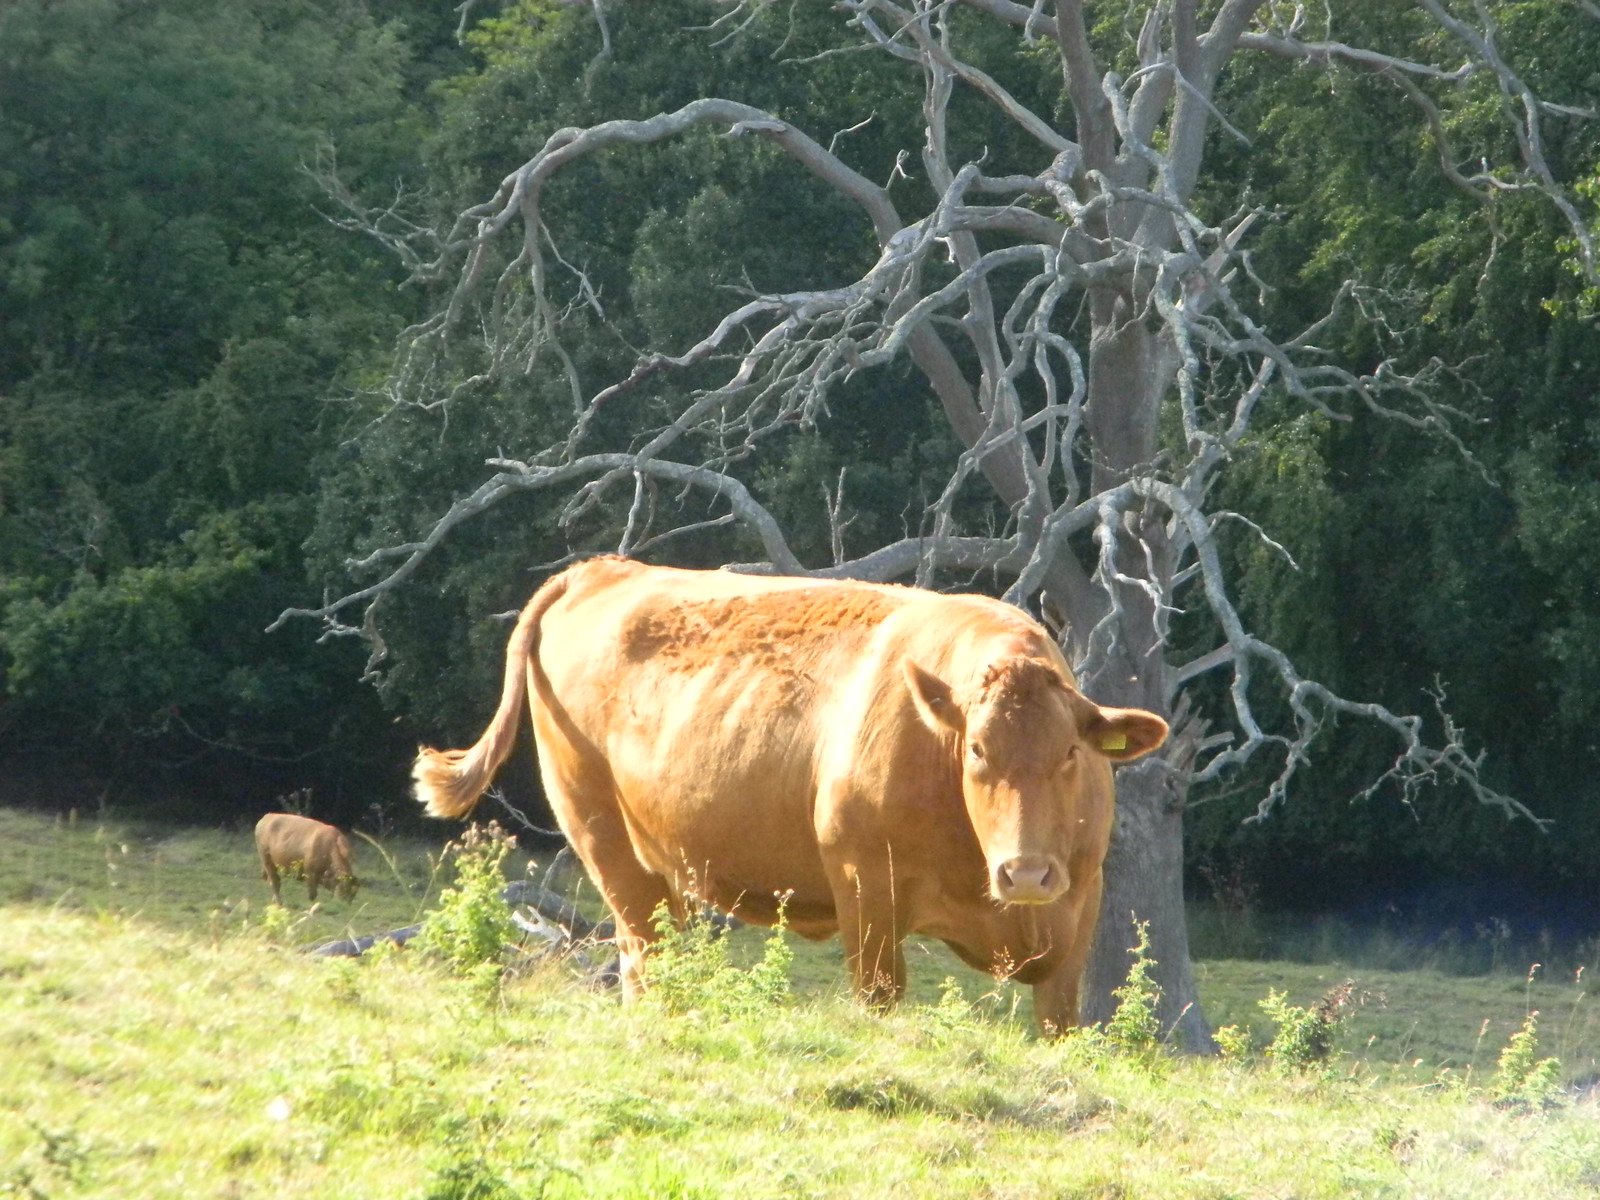 Cow Moreton-in-Marsh Circular